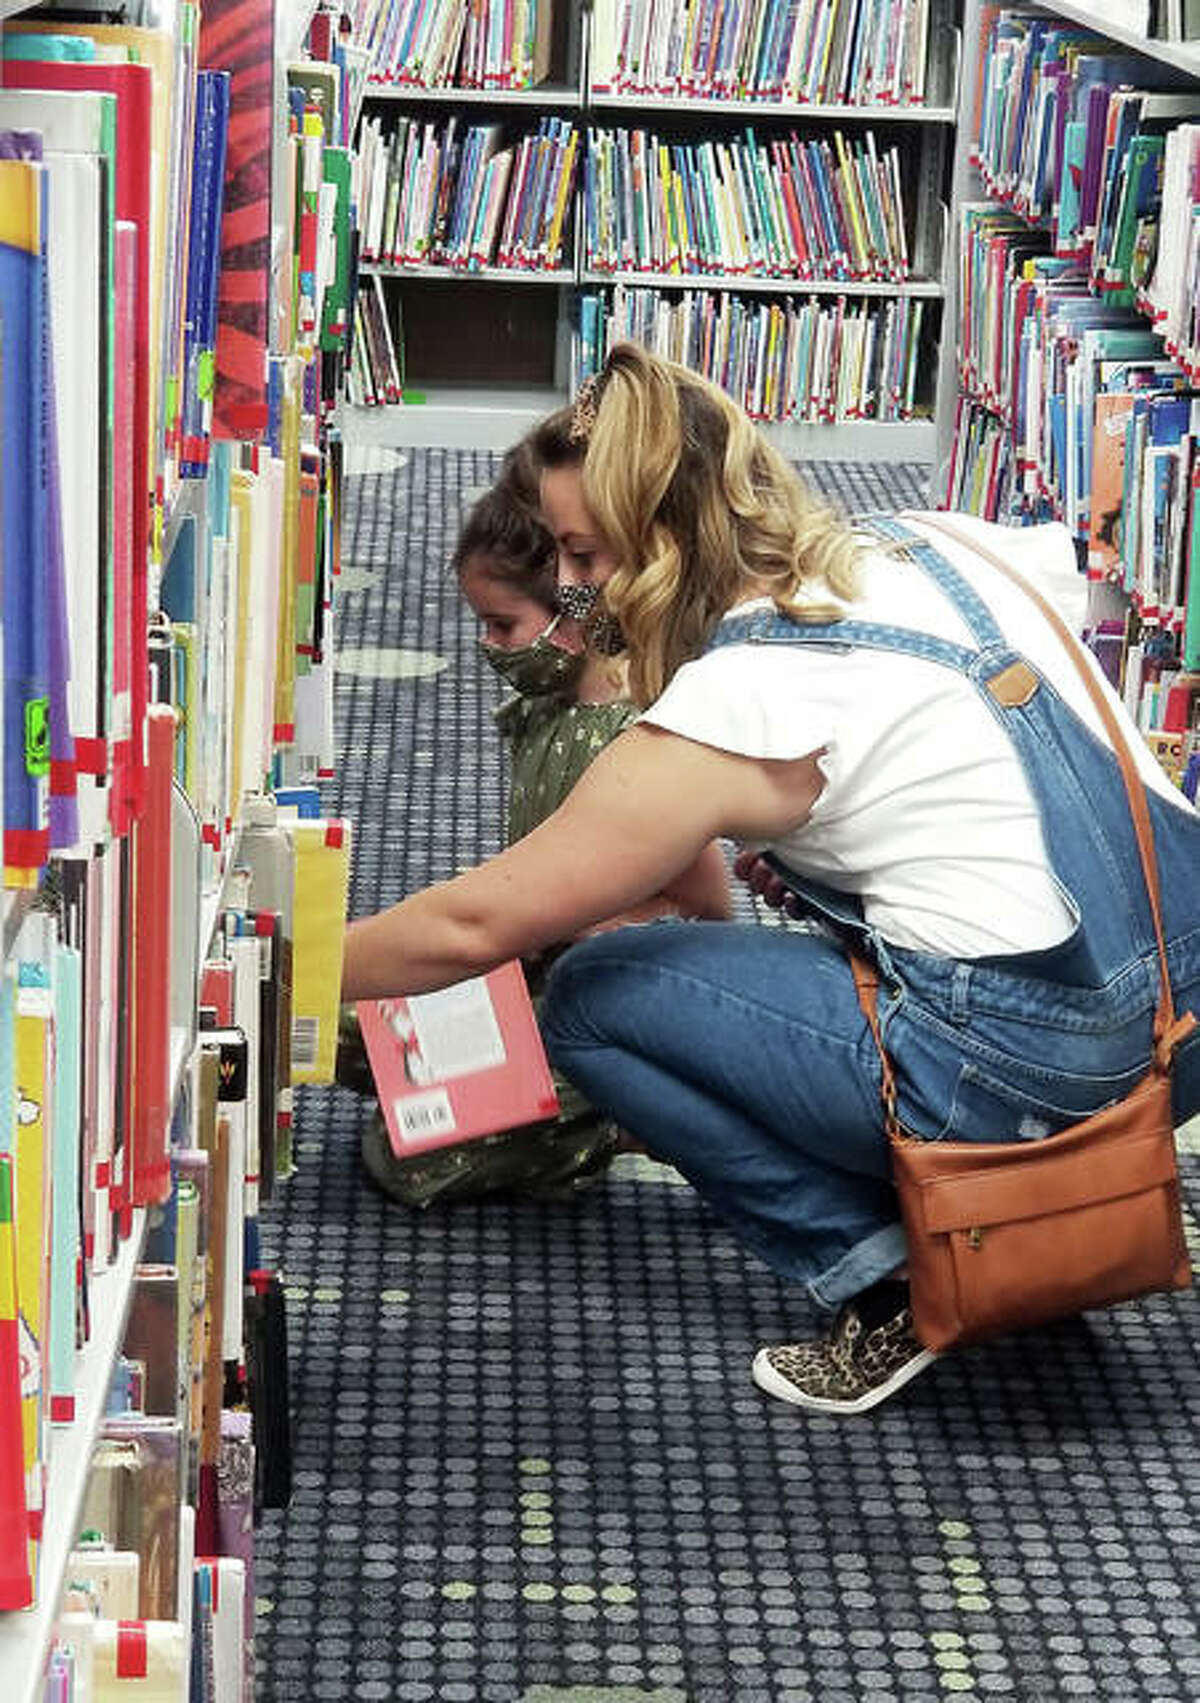 Since resident Christina Armour has her summer reading list set, she helped her daughter Lillian find some books at Edwardsville Public Library this week.